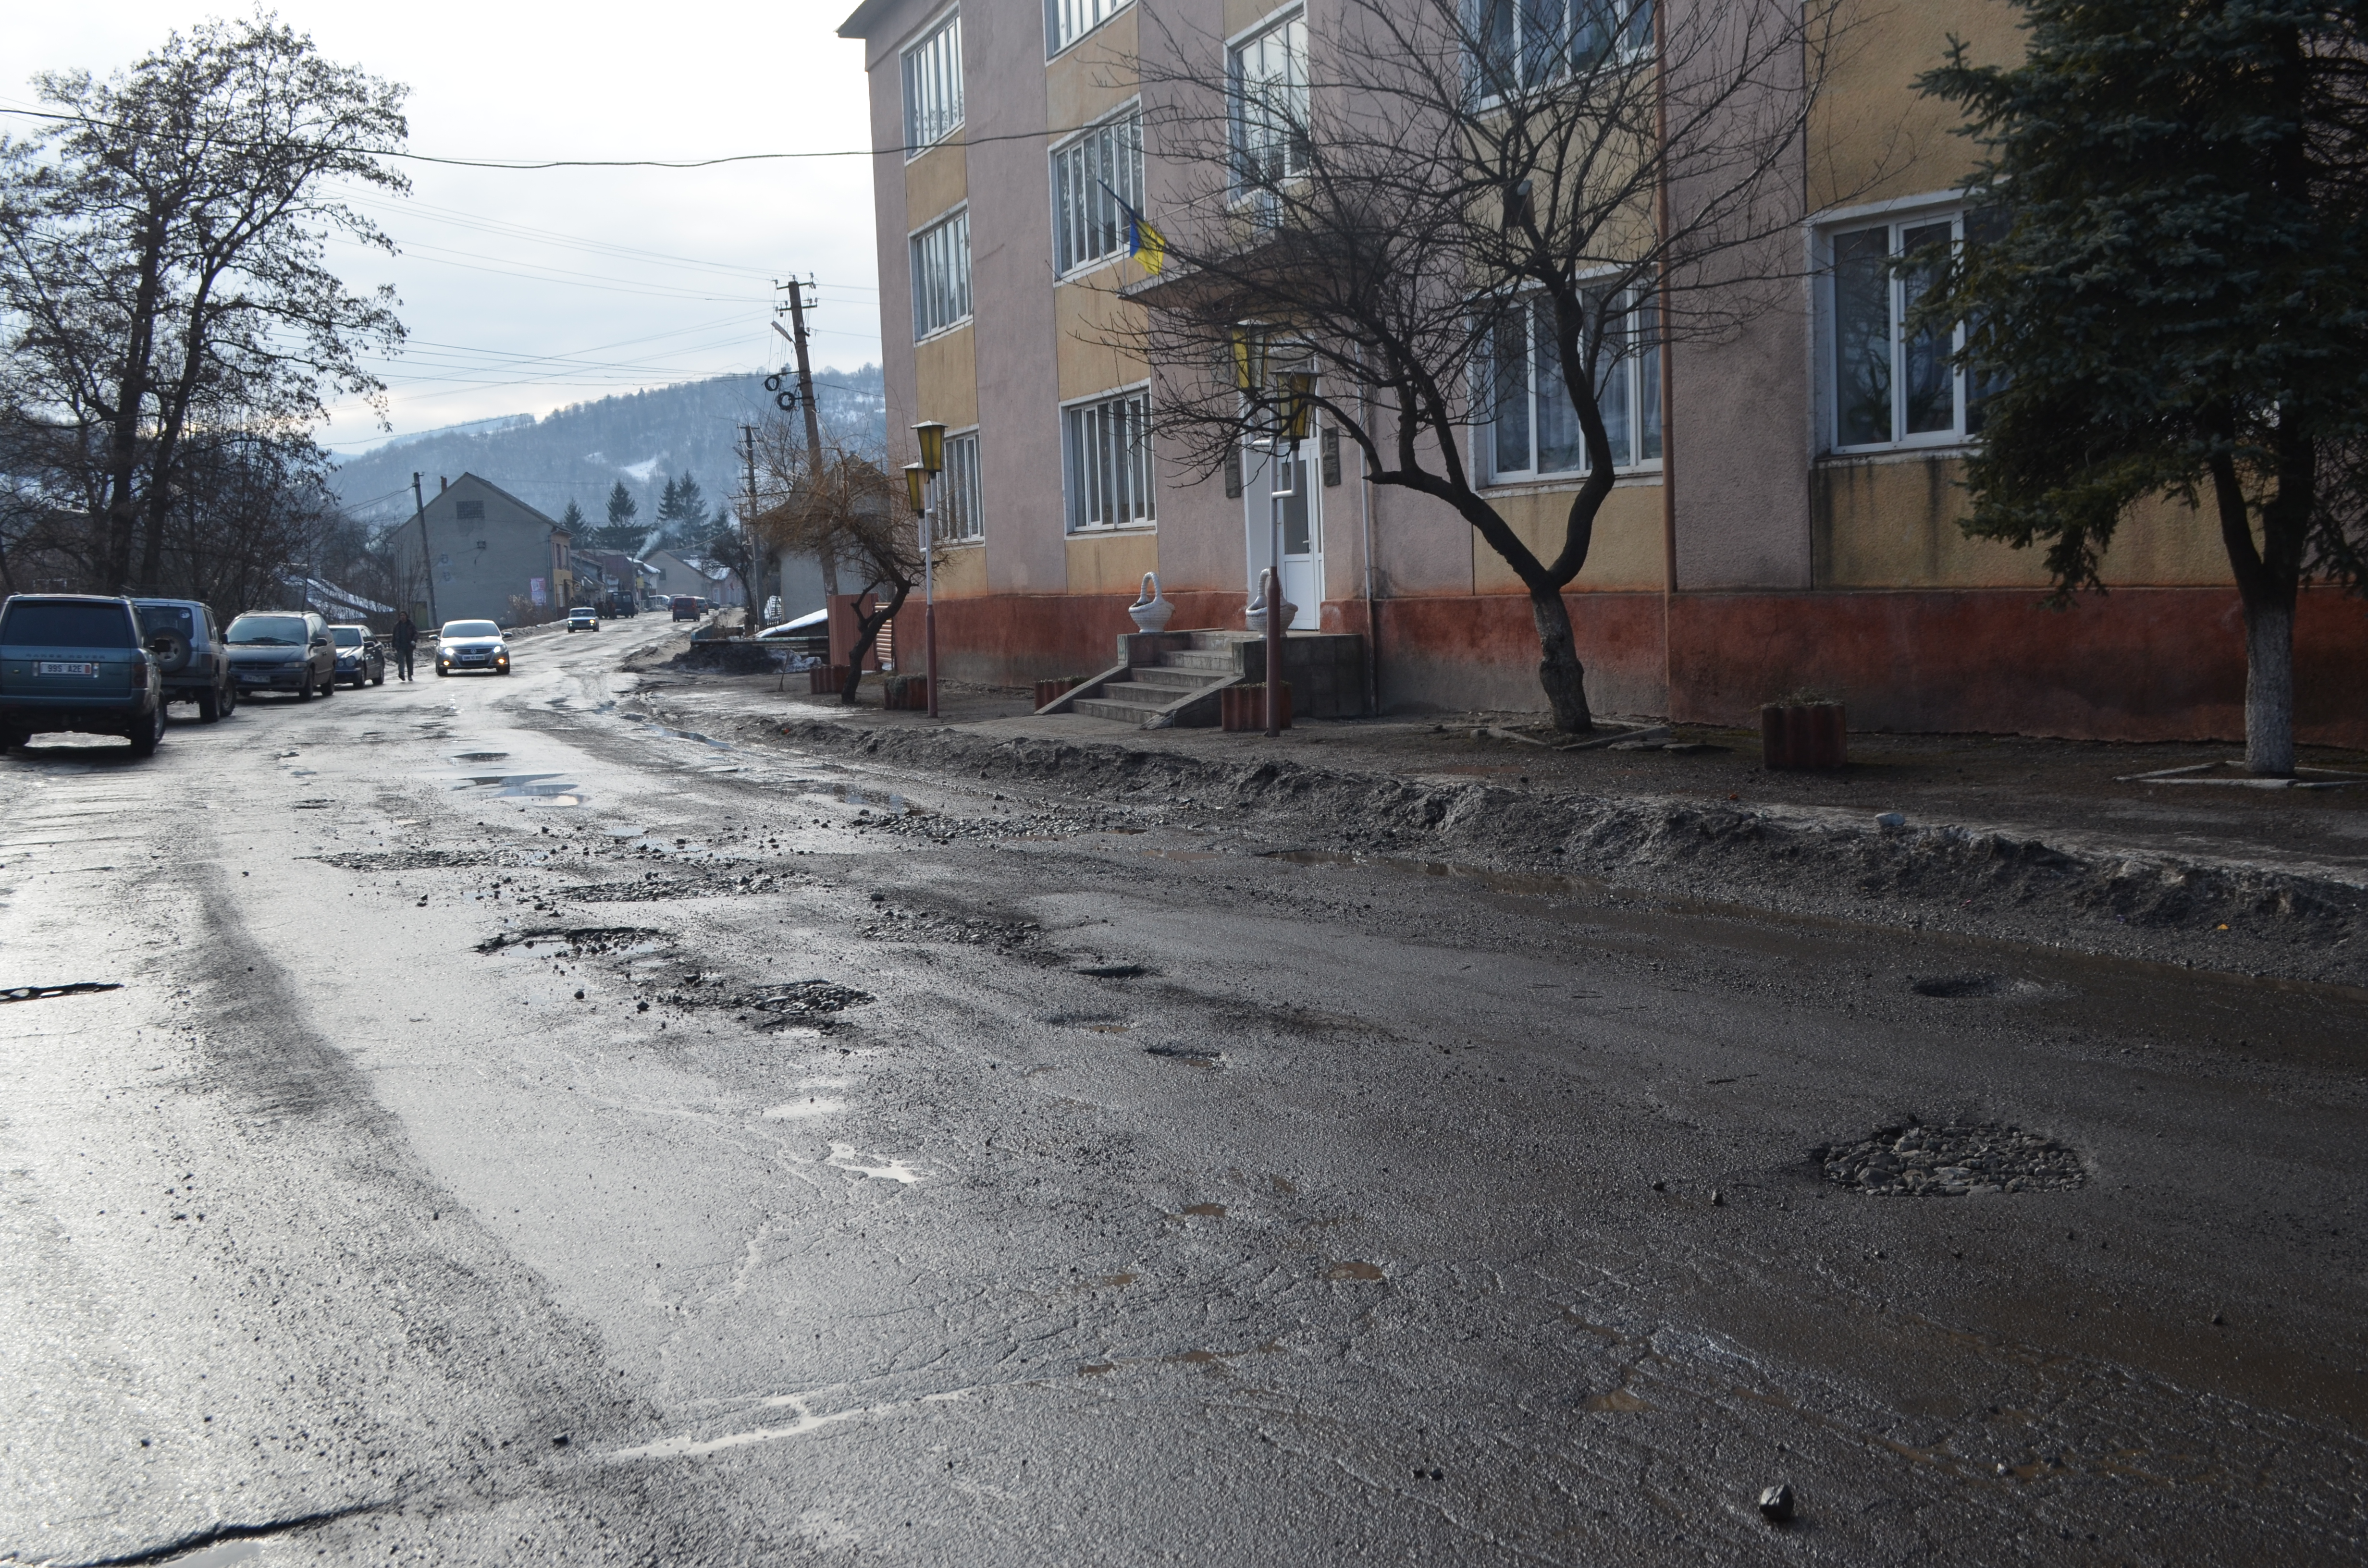 The Н-09 road in Transcarpathia: no chances for quick repairs